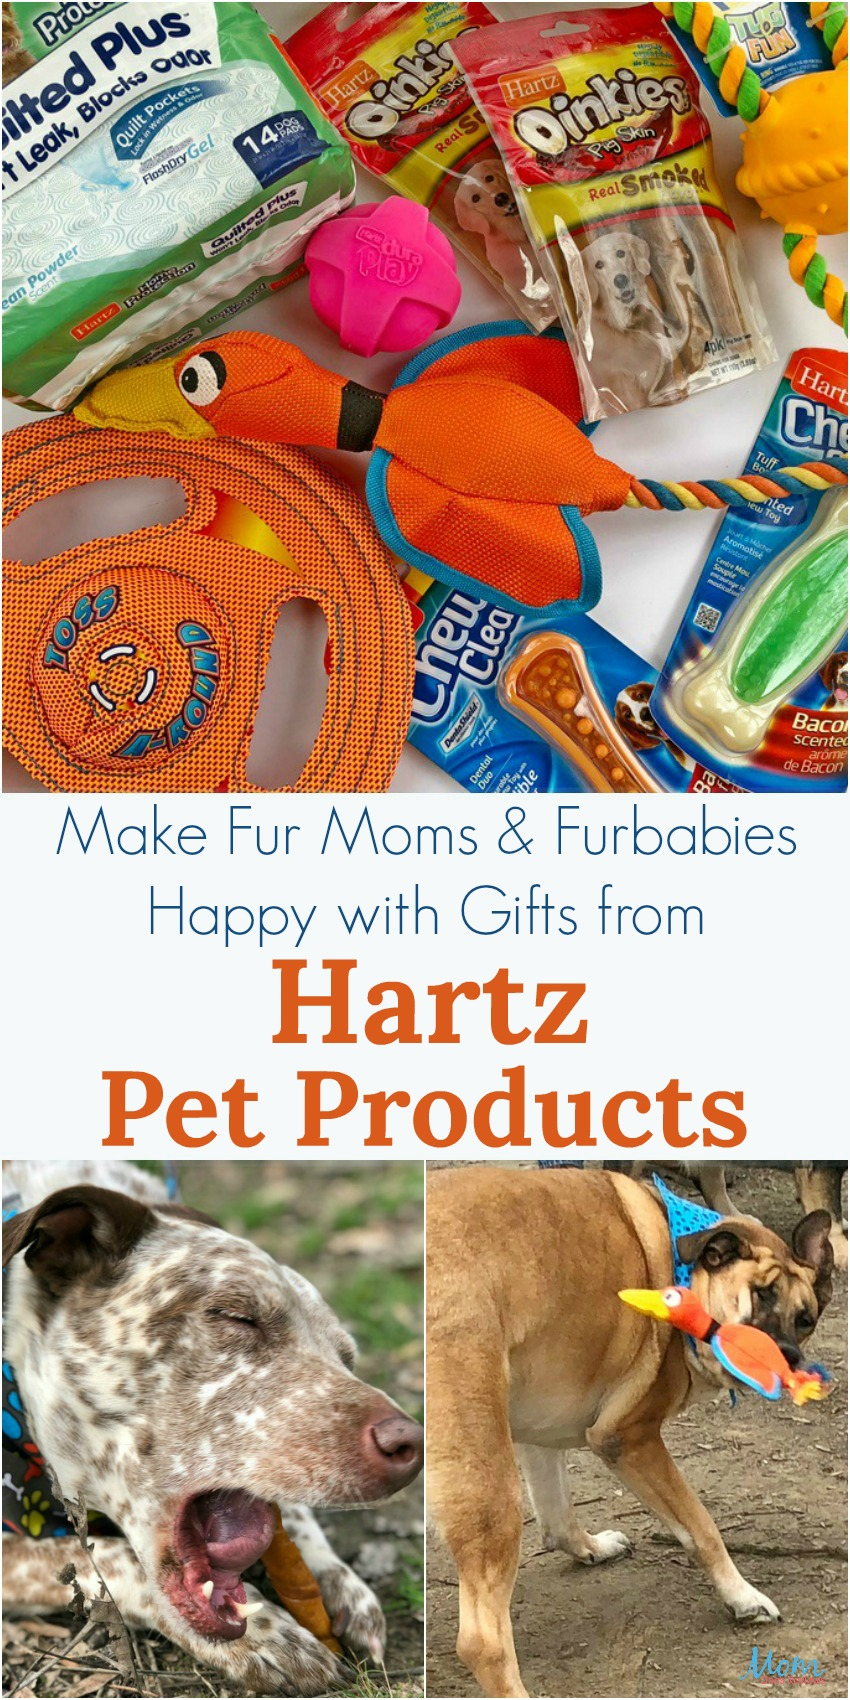 Make Fur Moms & Furbabies Happy with Gifts from Hartz Pet Products! #giftsformom18